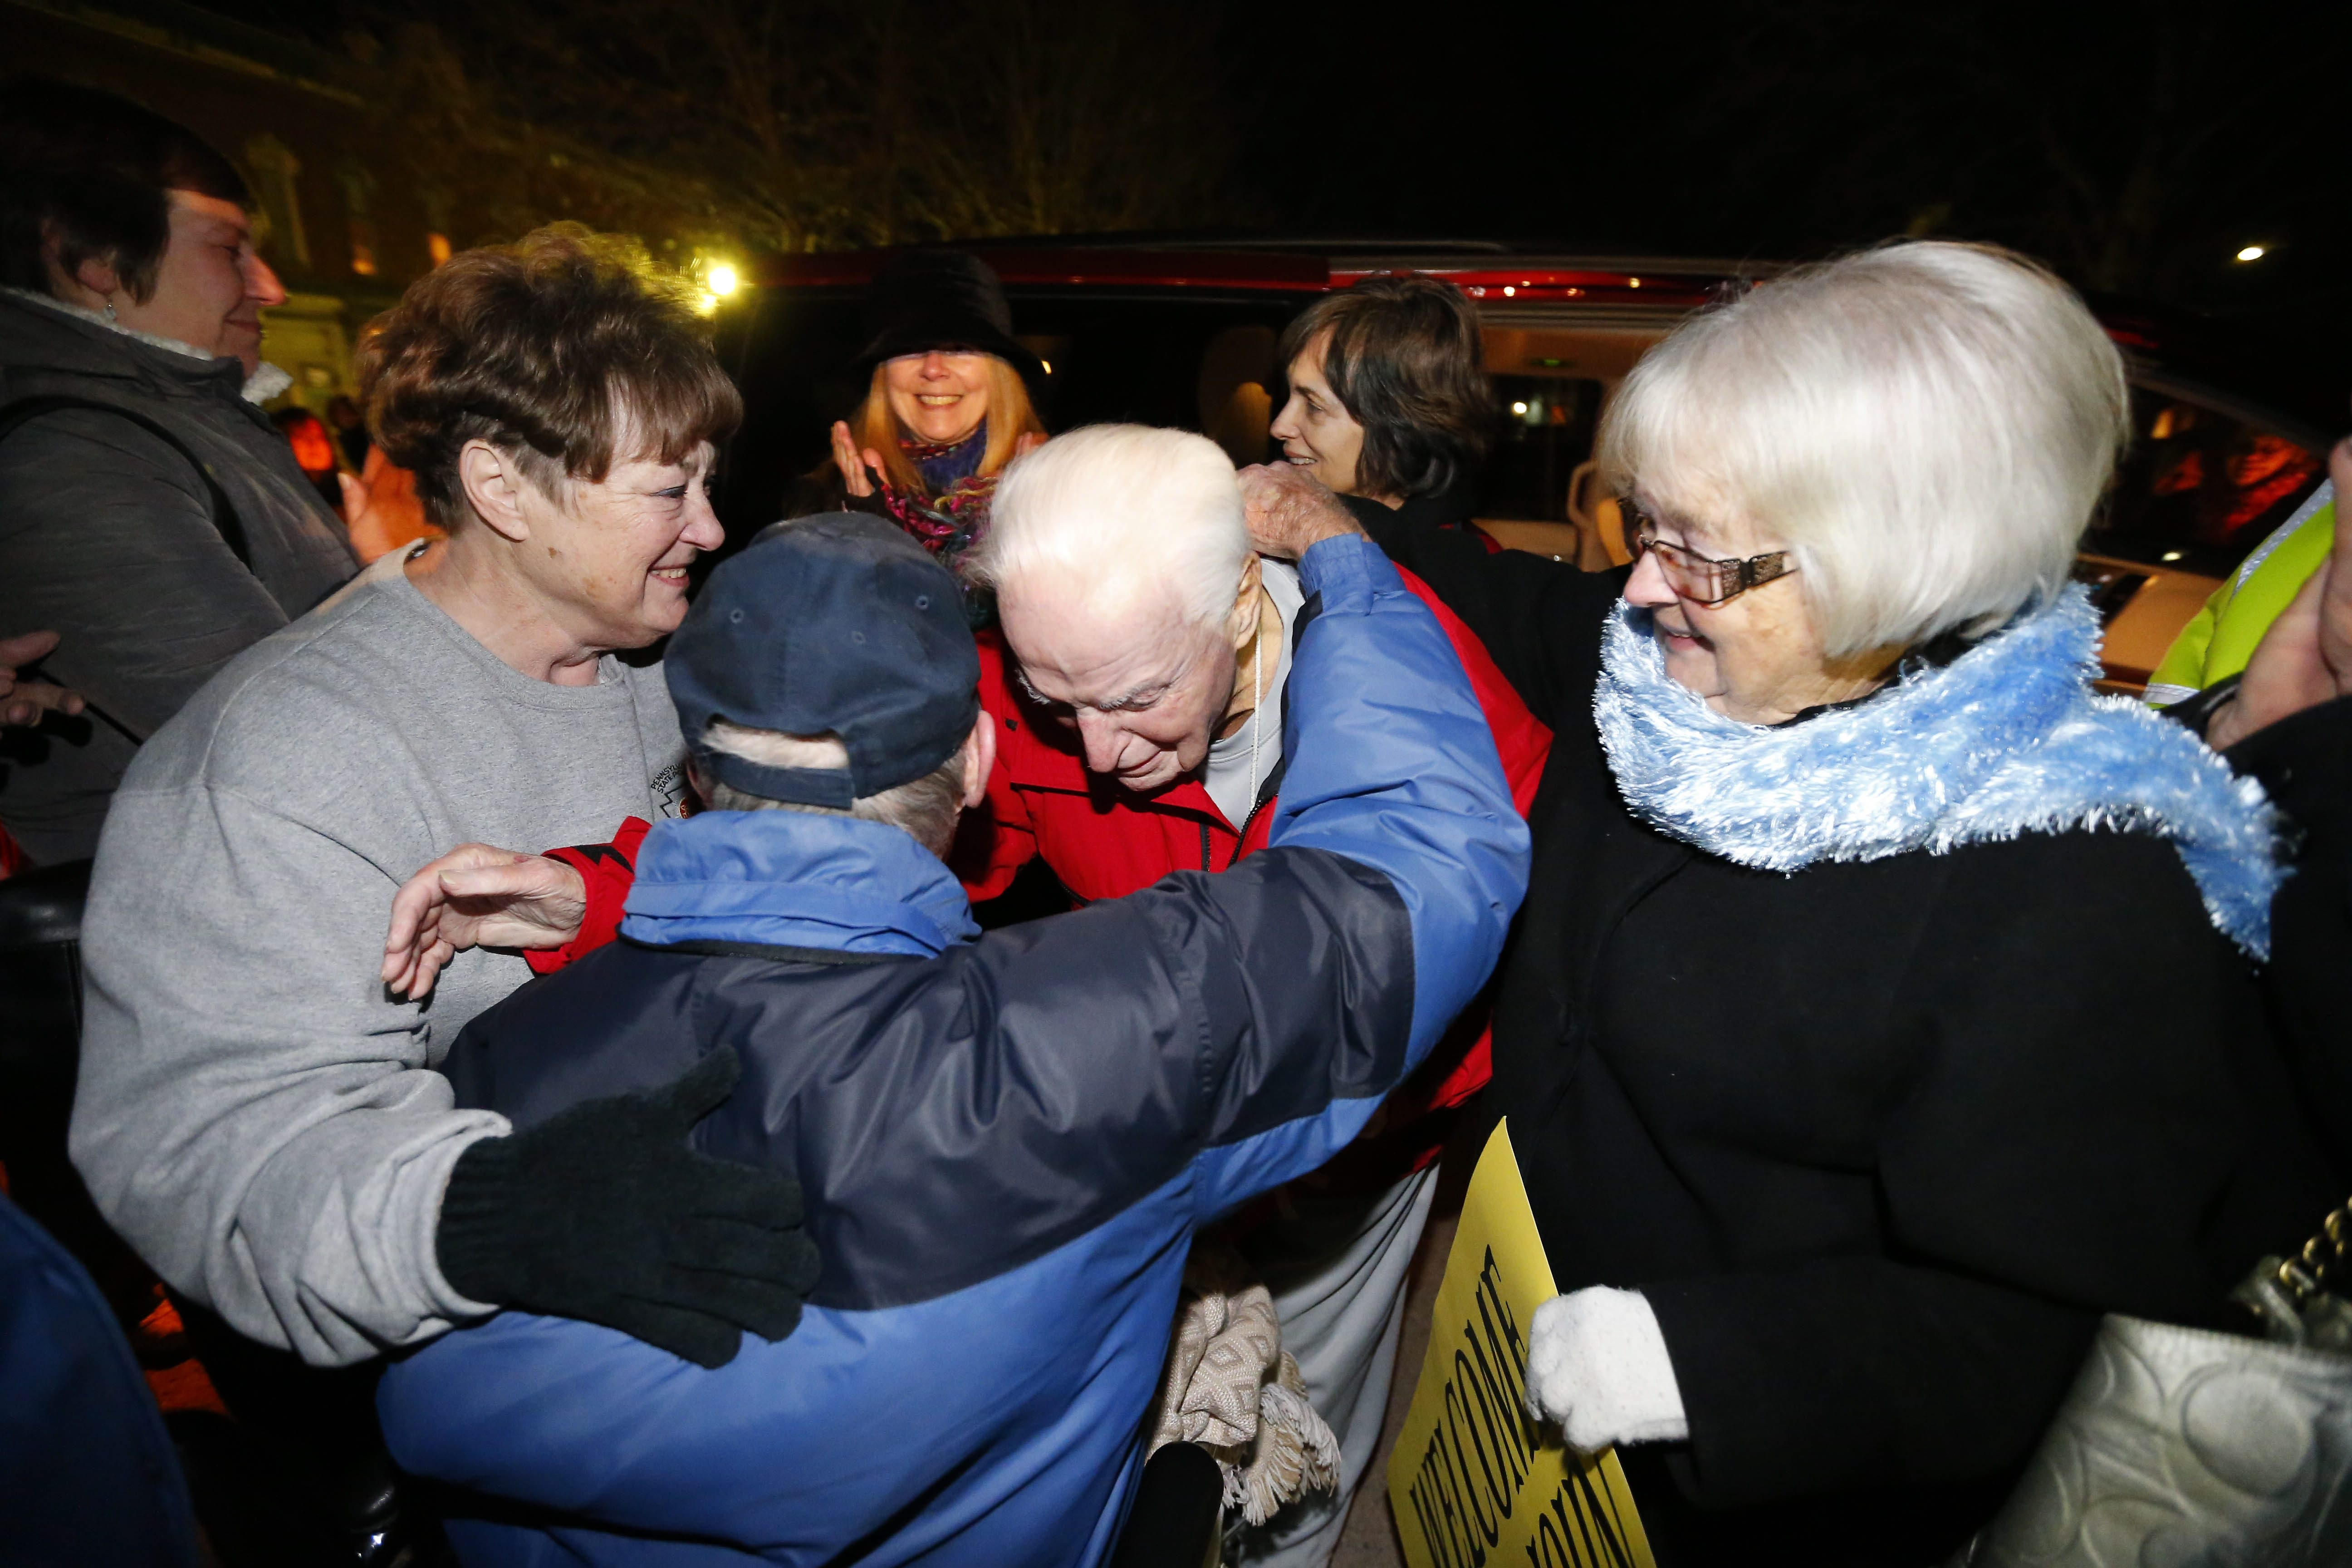 John J. Rigas is welcomed home from prison by the people of Coudersport, Pa., on Monday. See a photo gallery at buffalonews.com.